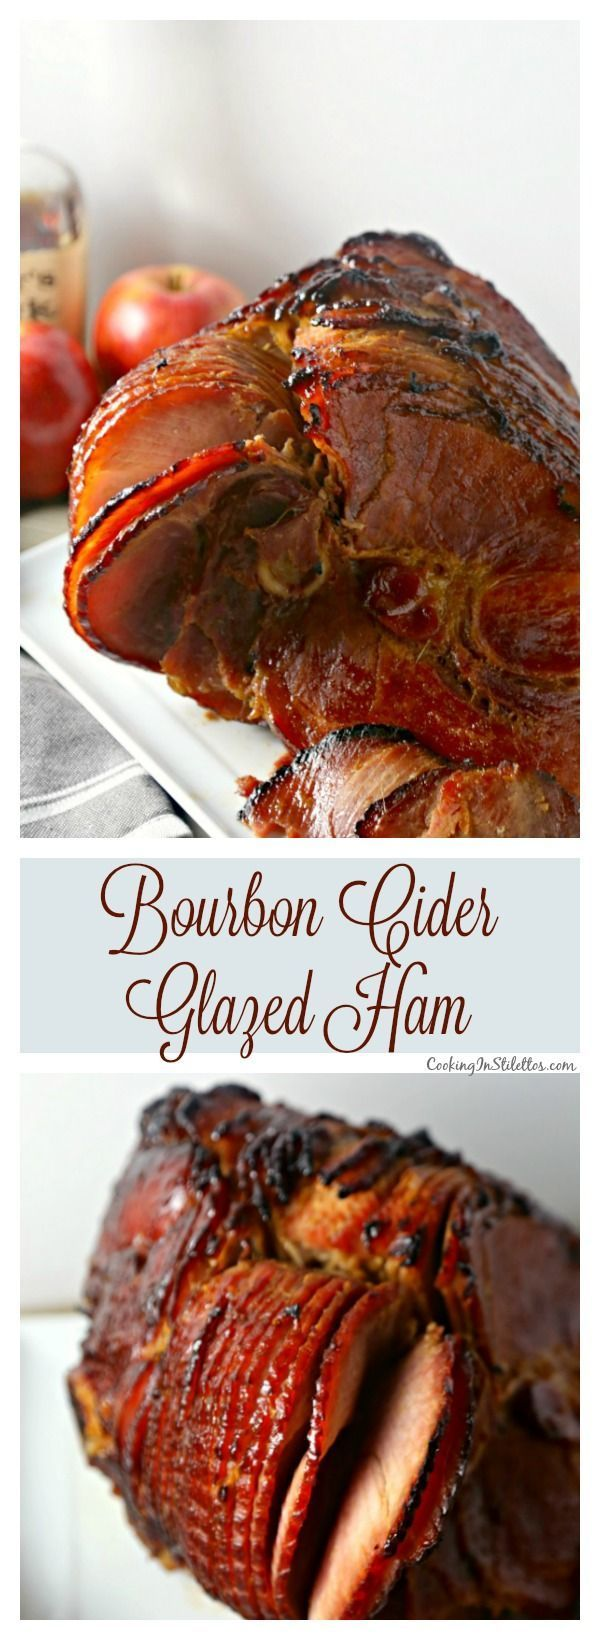 Bourbon Cider Glazed Ham from http://CookingInStilettos.com is the perfect holiday ham recipe!  Just a few ingredients is all you need for a ham glazed to perfection with a hint of smoky sweetness!  Ham | Bourbon | Apple Cider | Easy Recipe | Holiday | Easter  via @CookInStilettos